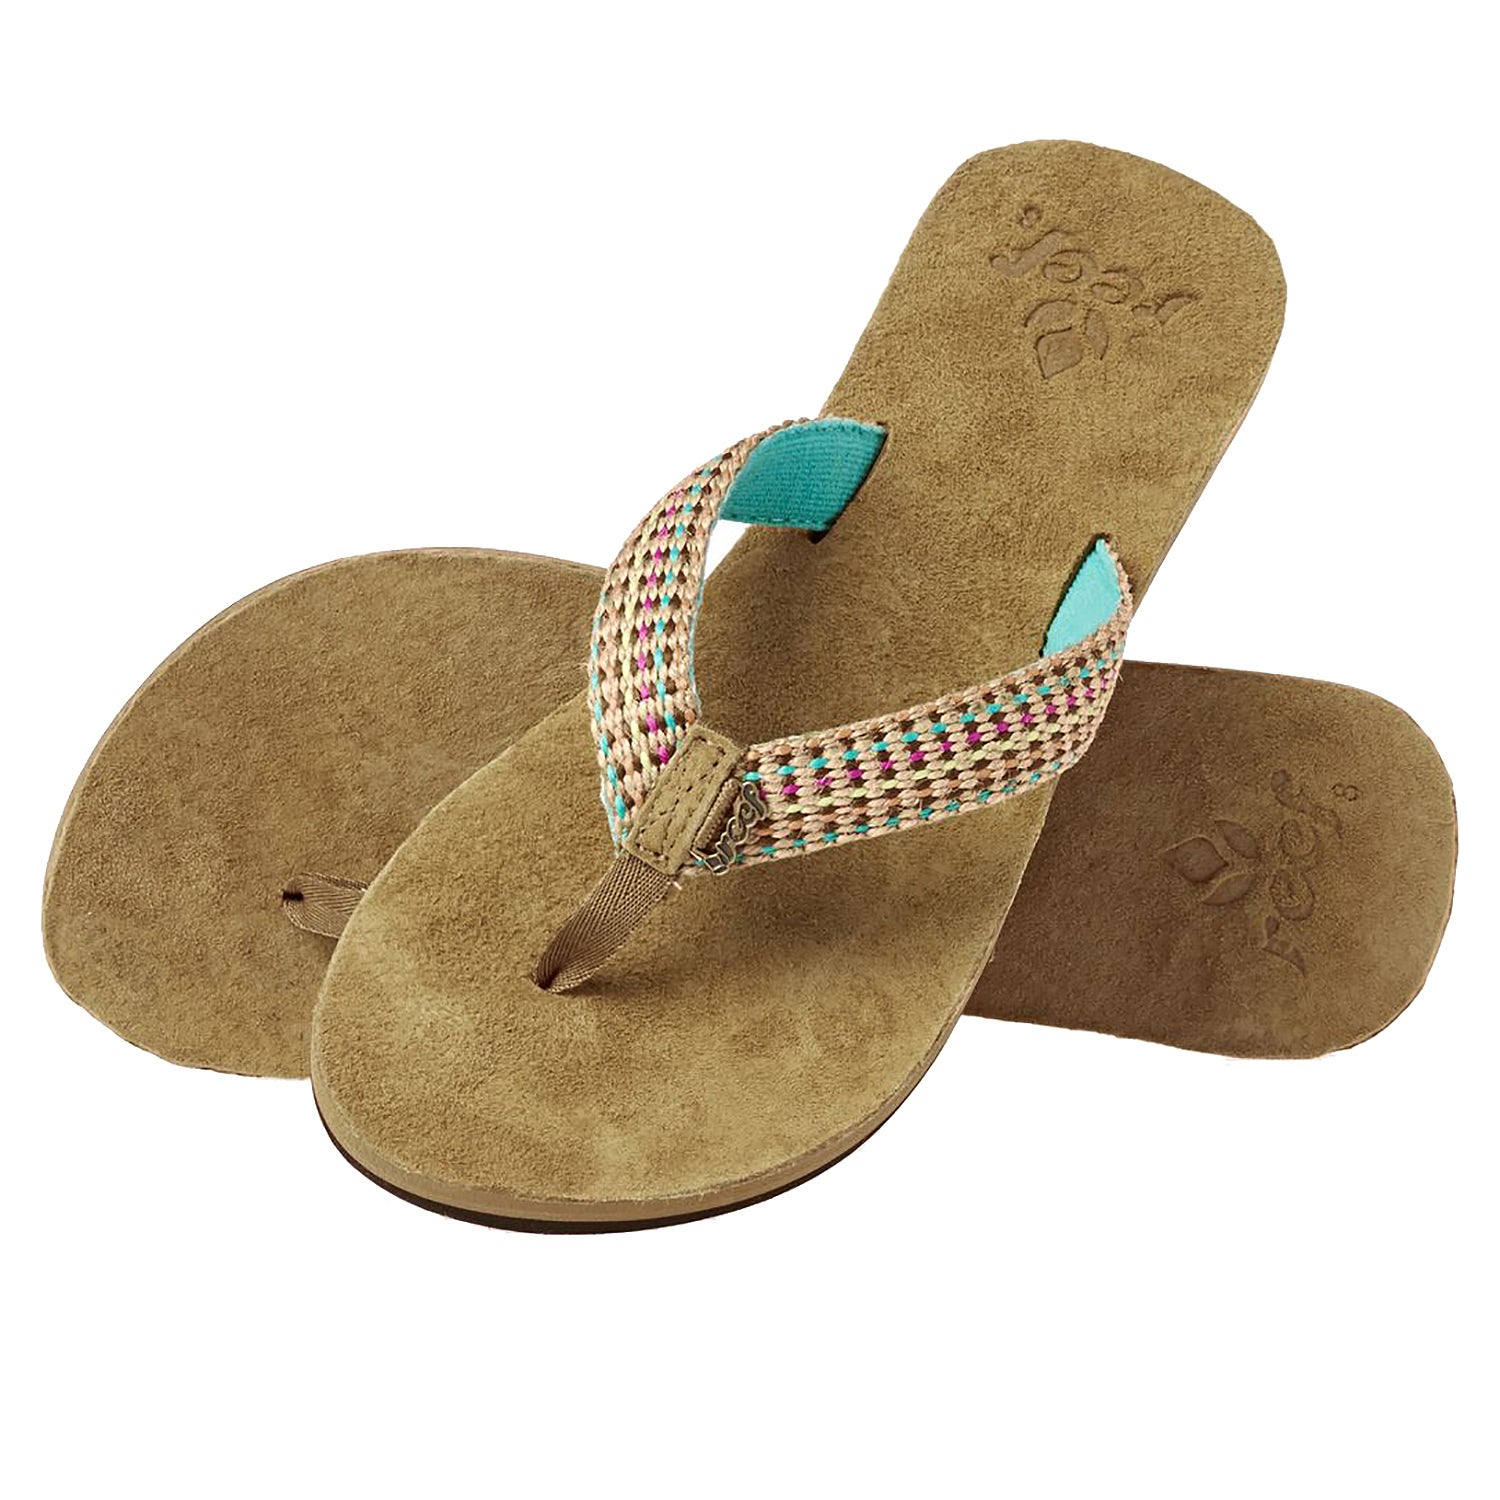 Teal All Sizes Reef Gypsylove Womens Footwear Sandals